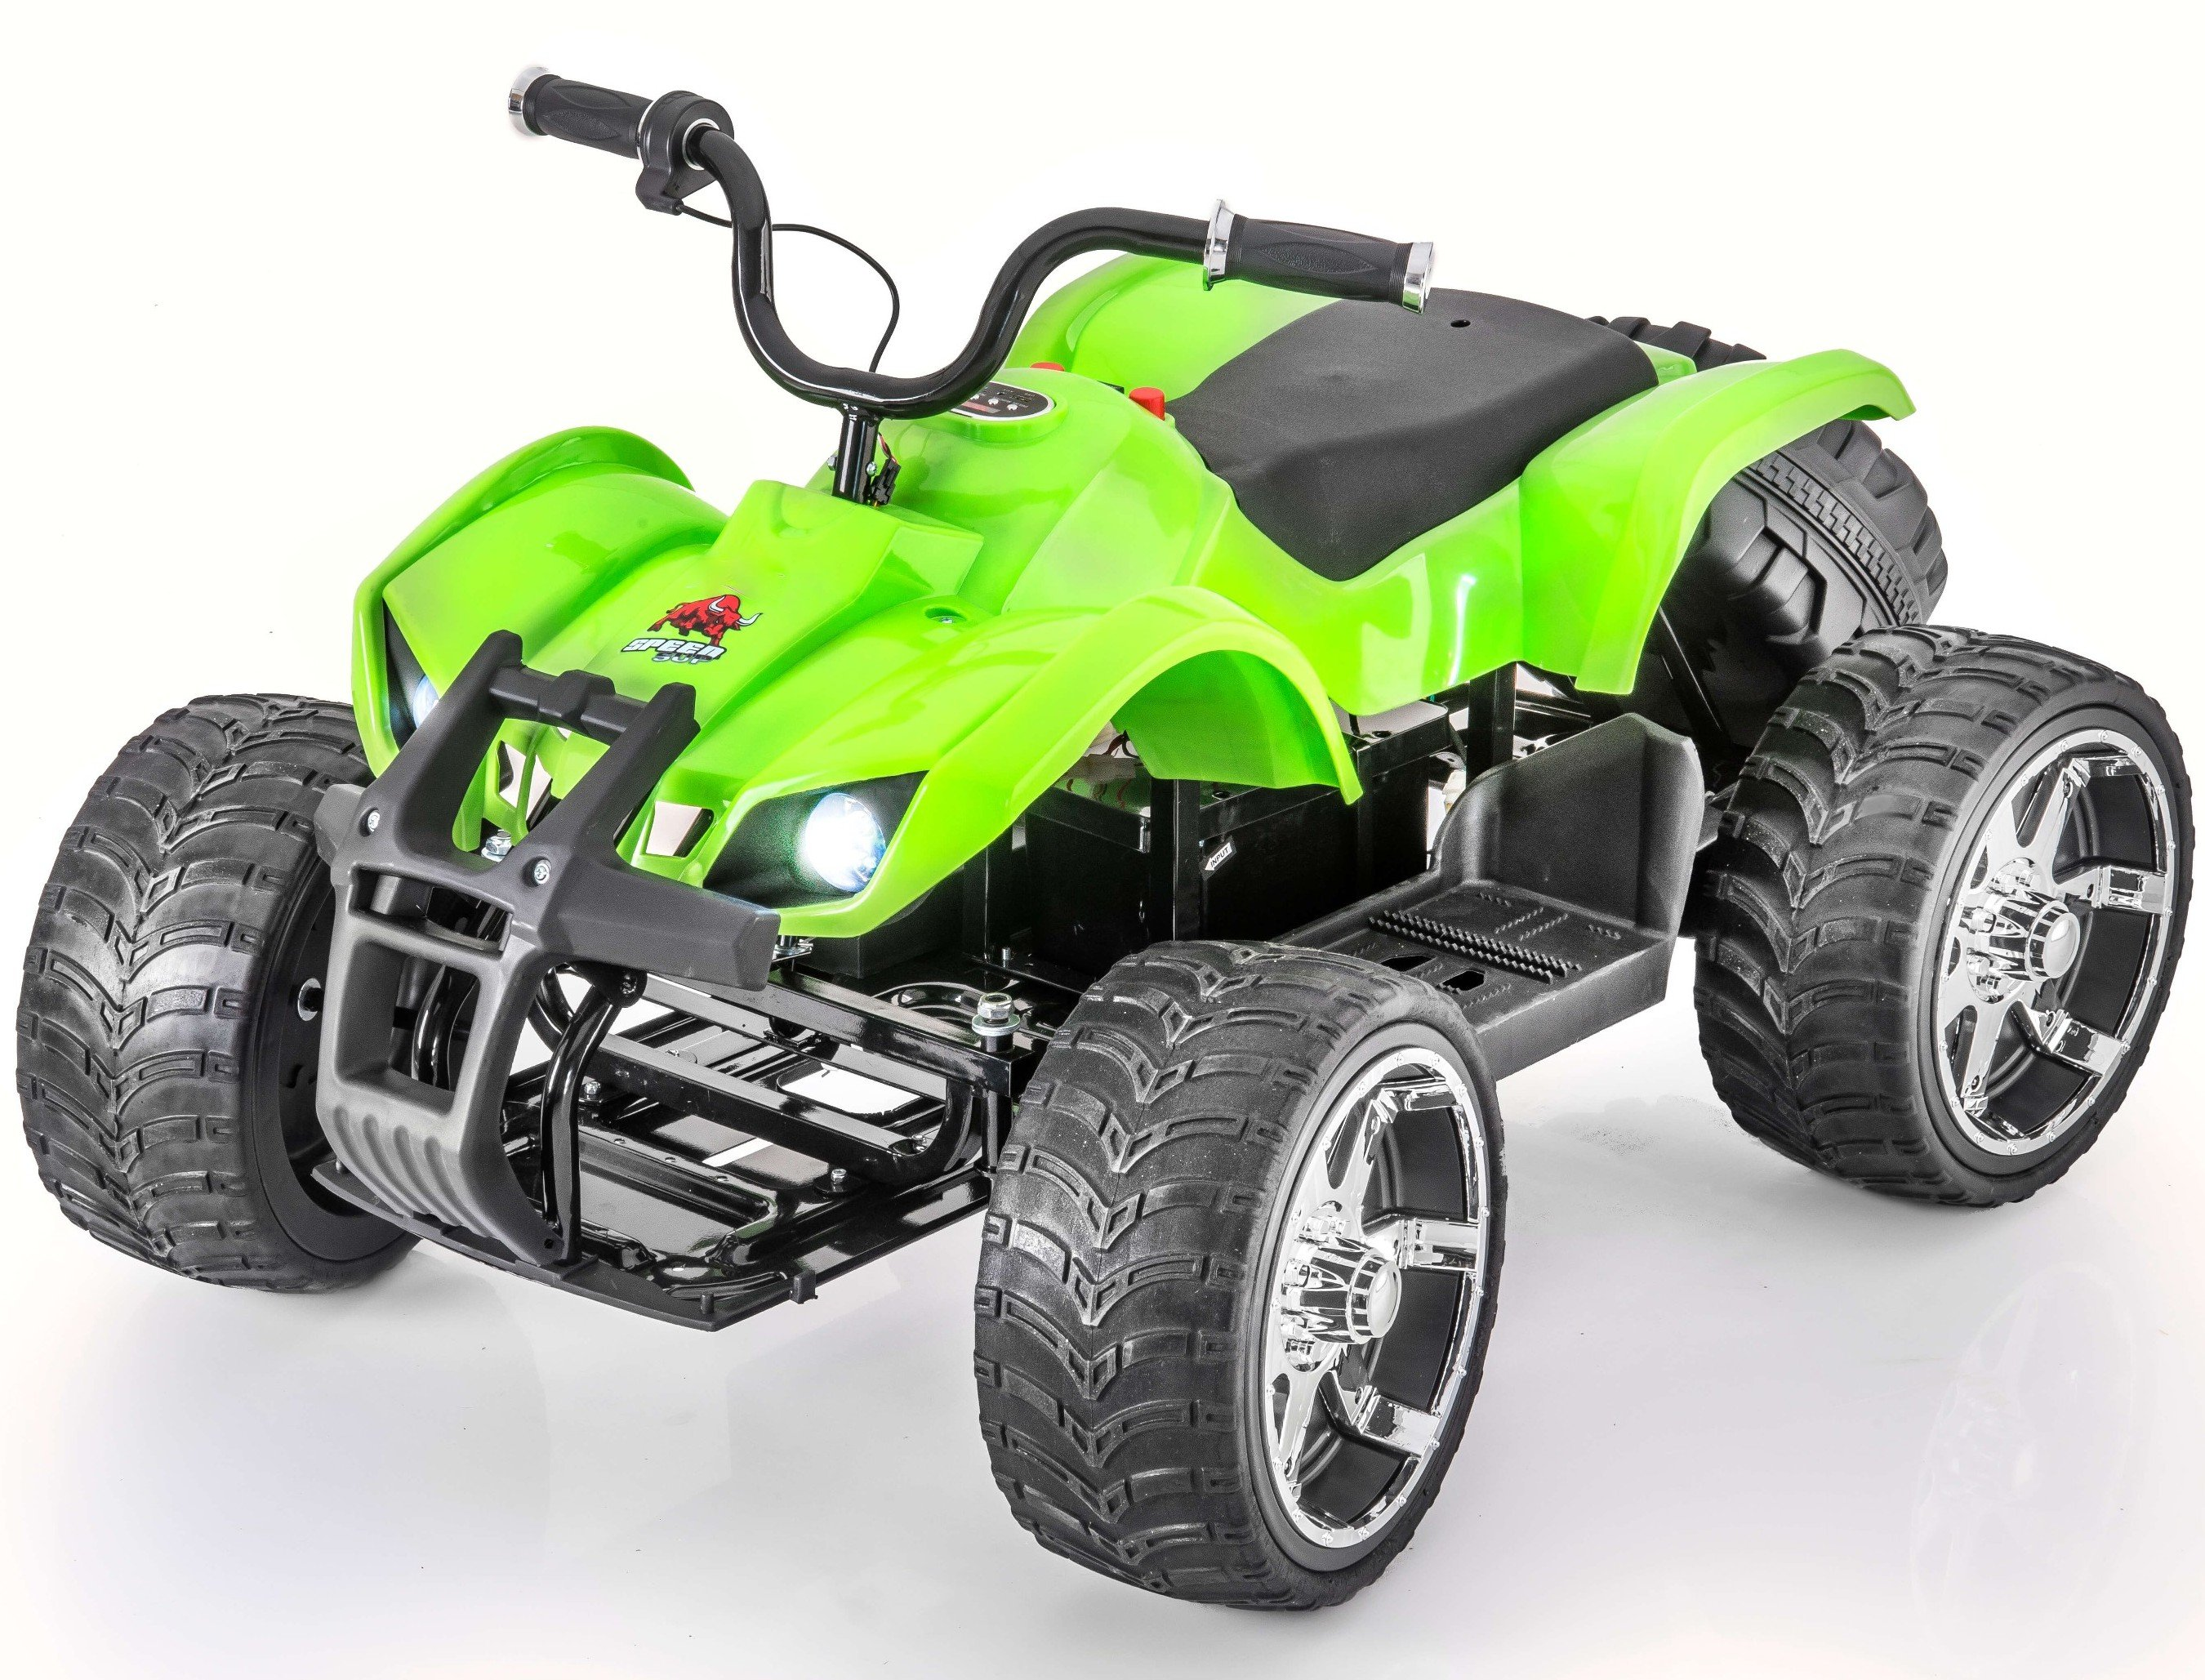 12V Rocket Sport Edition Quad   ATV Kids Dune Electric Ride On with Rubber Wheels by